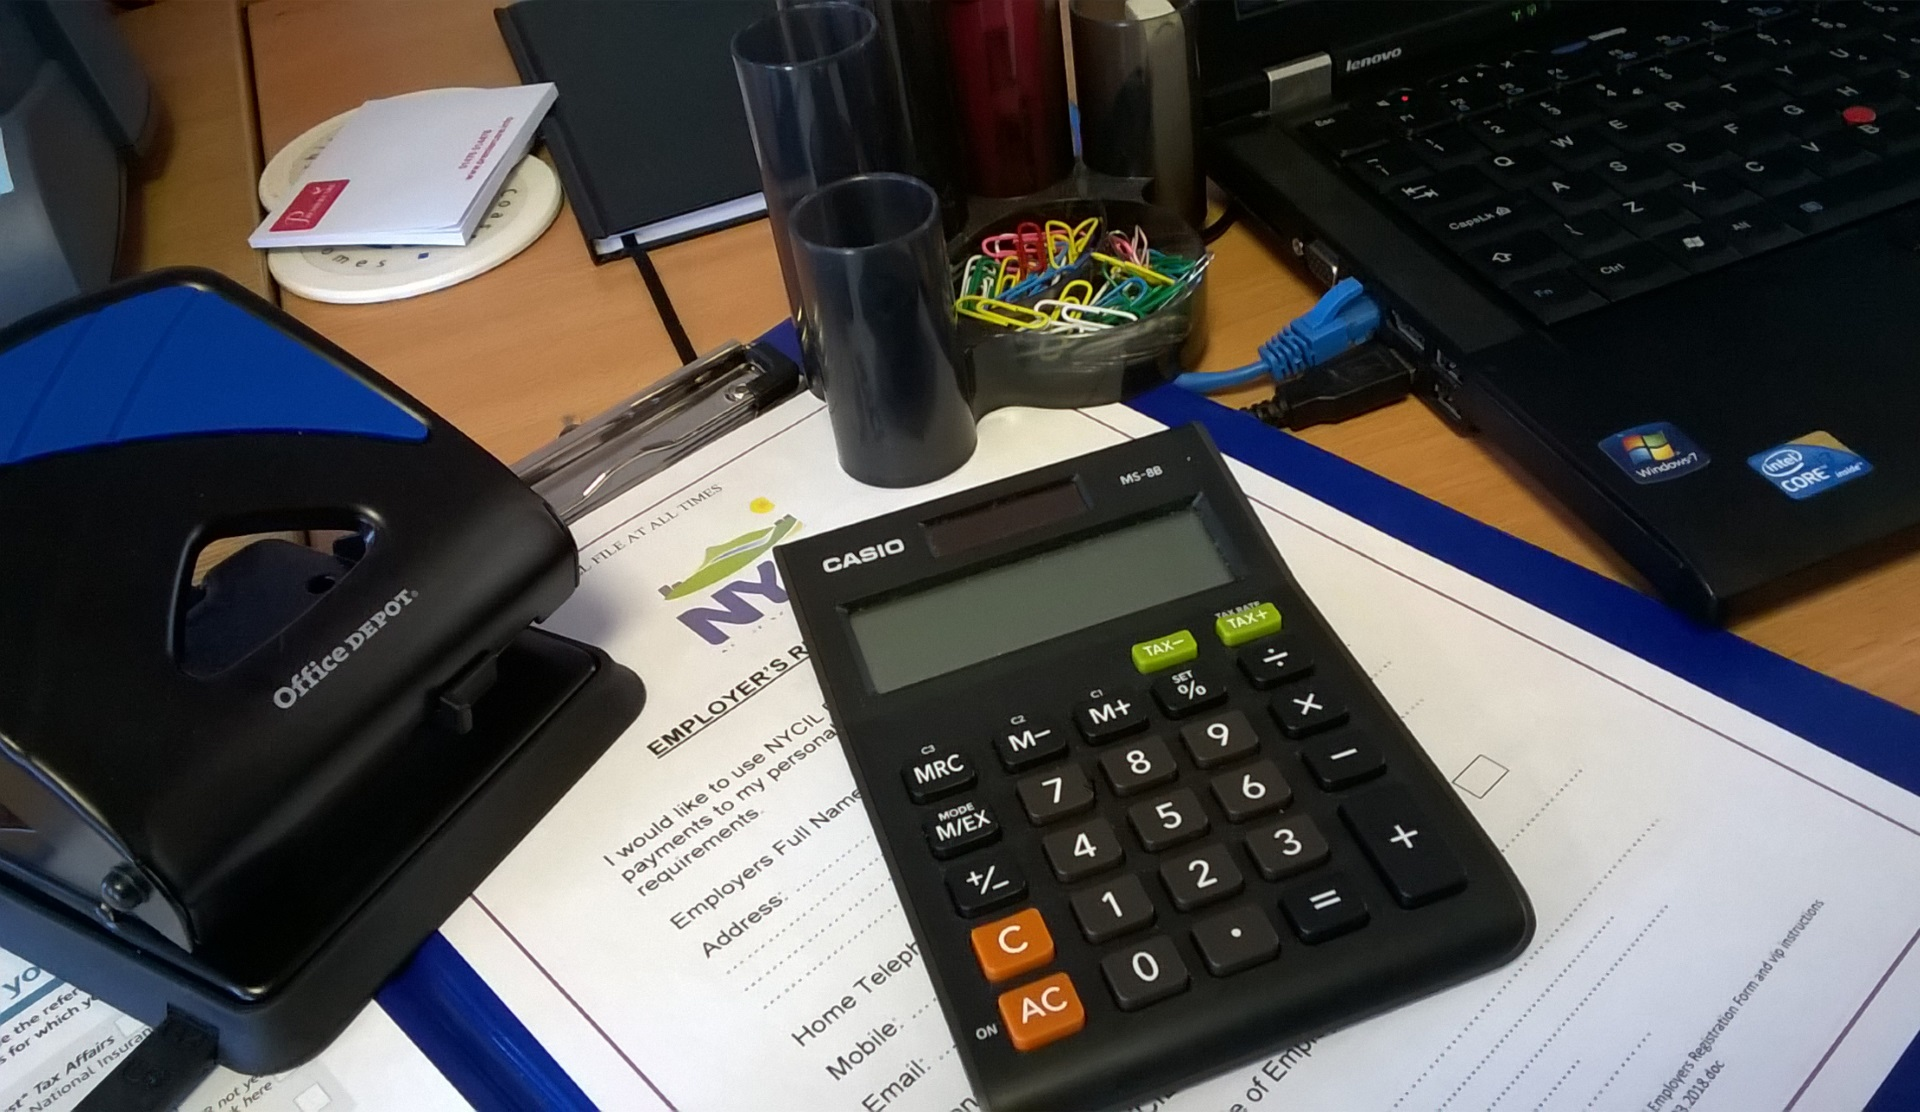 Payroll themed image of a messy desk with a laptop, calculator, clipboard ect.